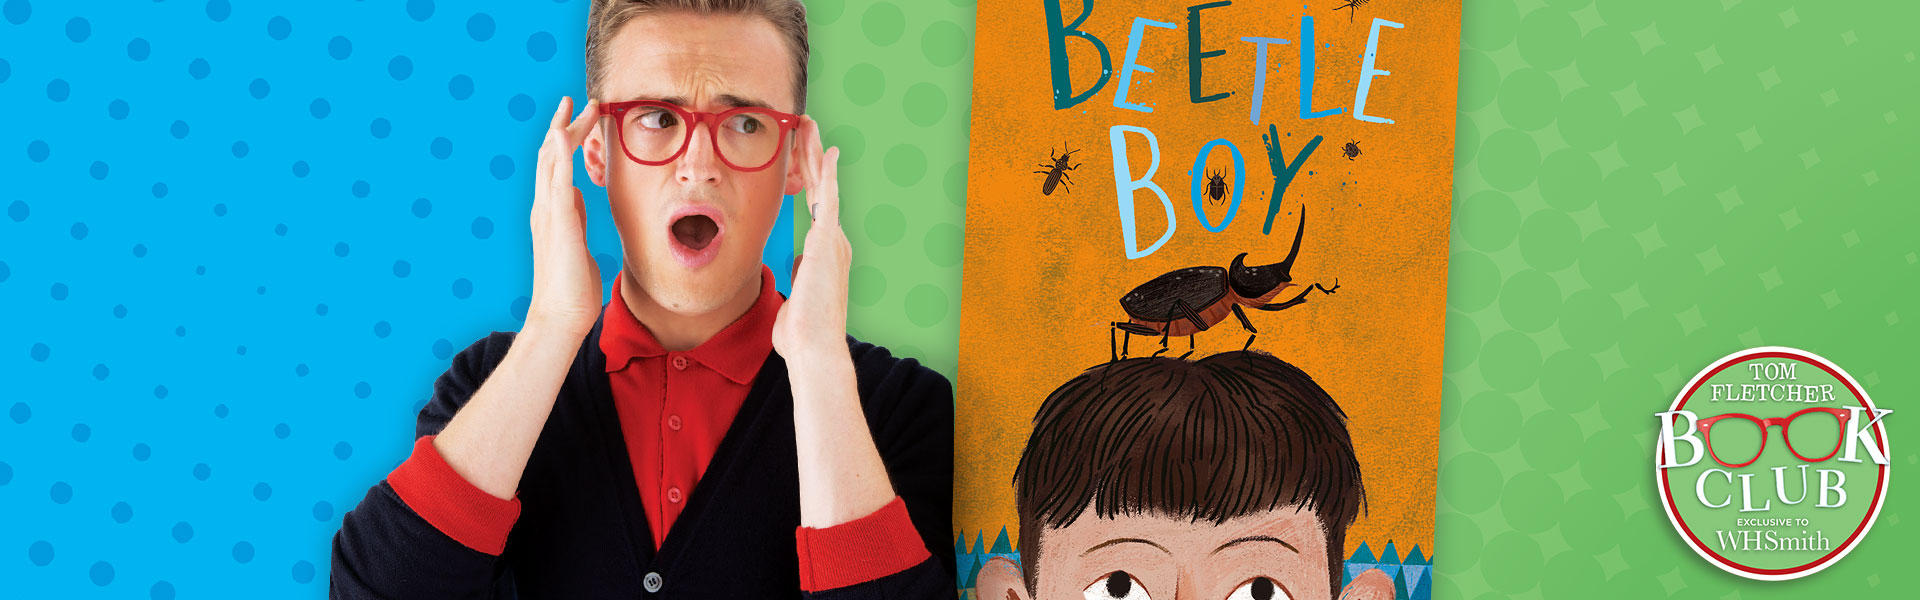 Tom Fletcher Book Club: Beetle Boy by M. G. Leonard